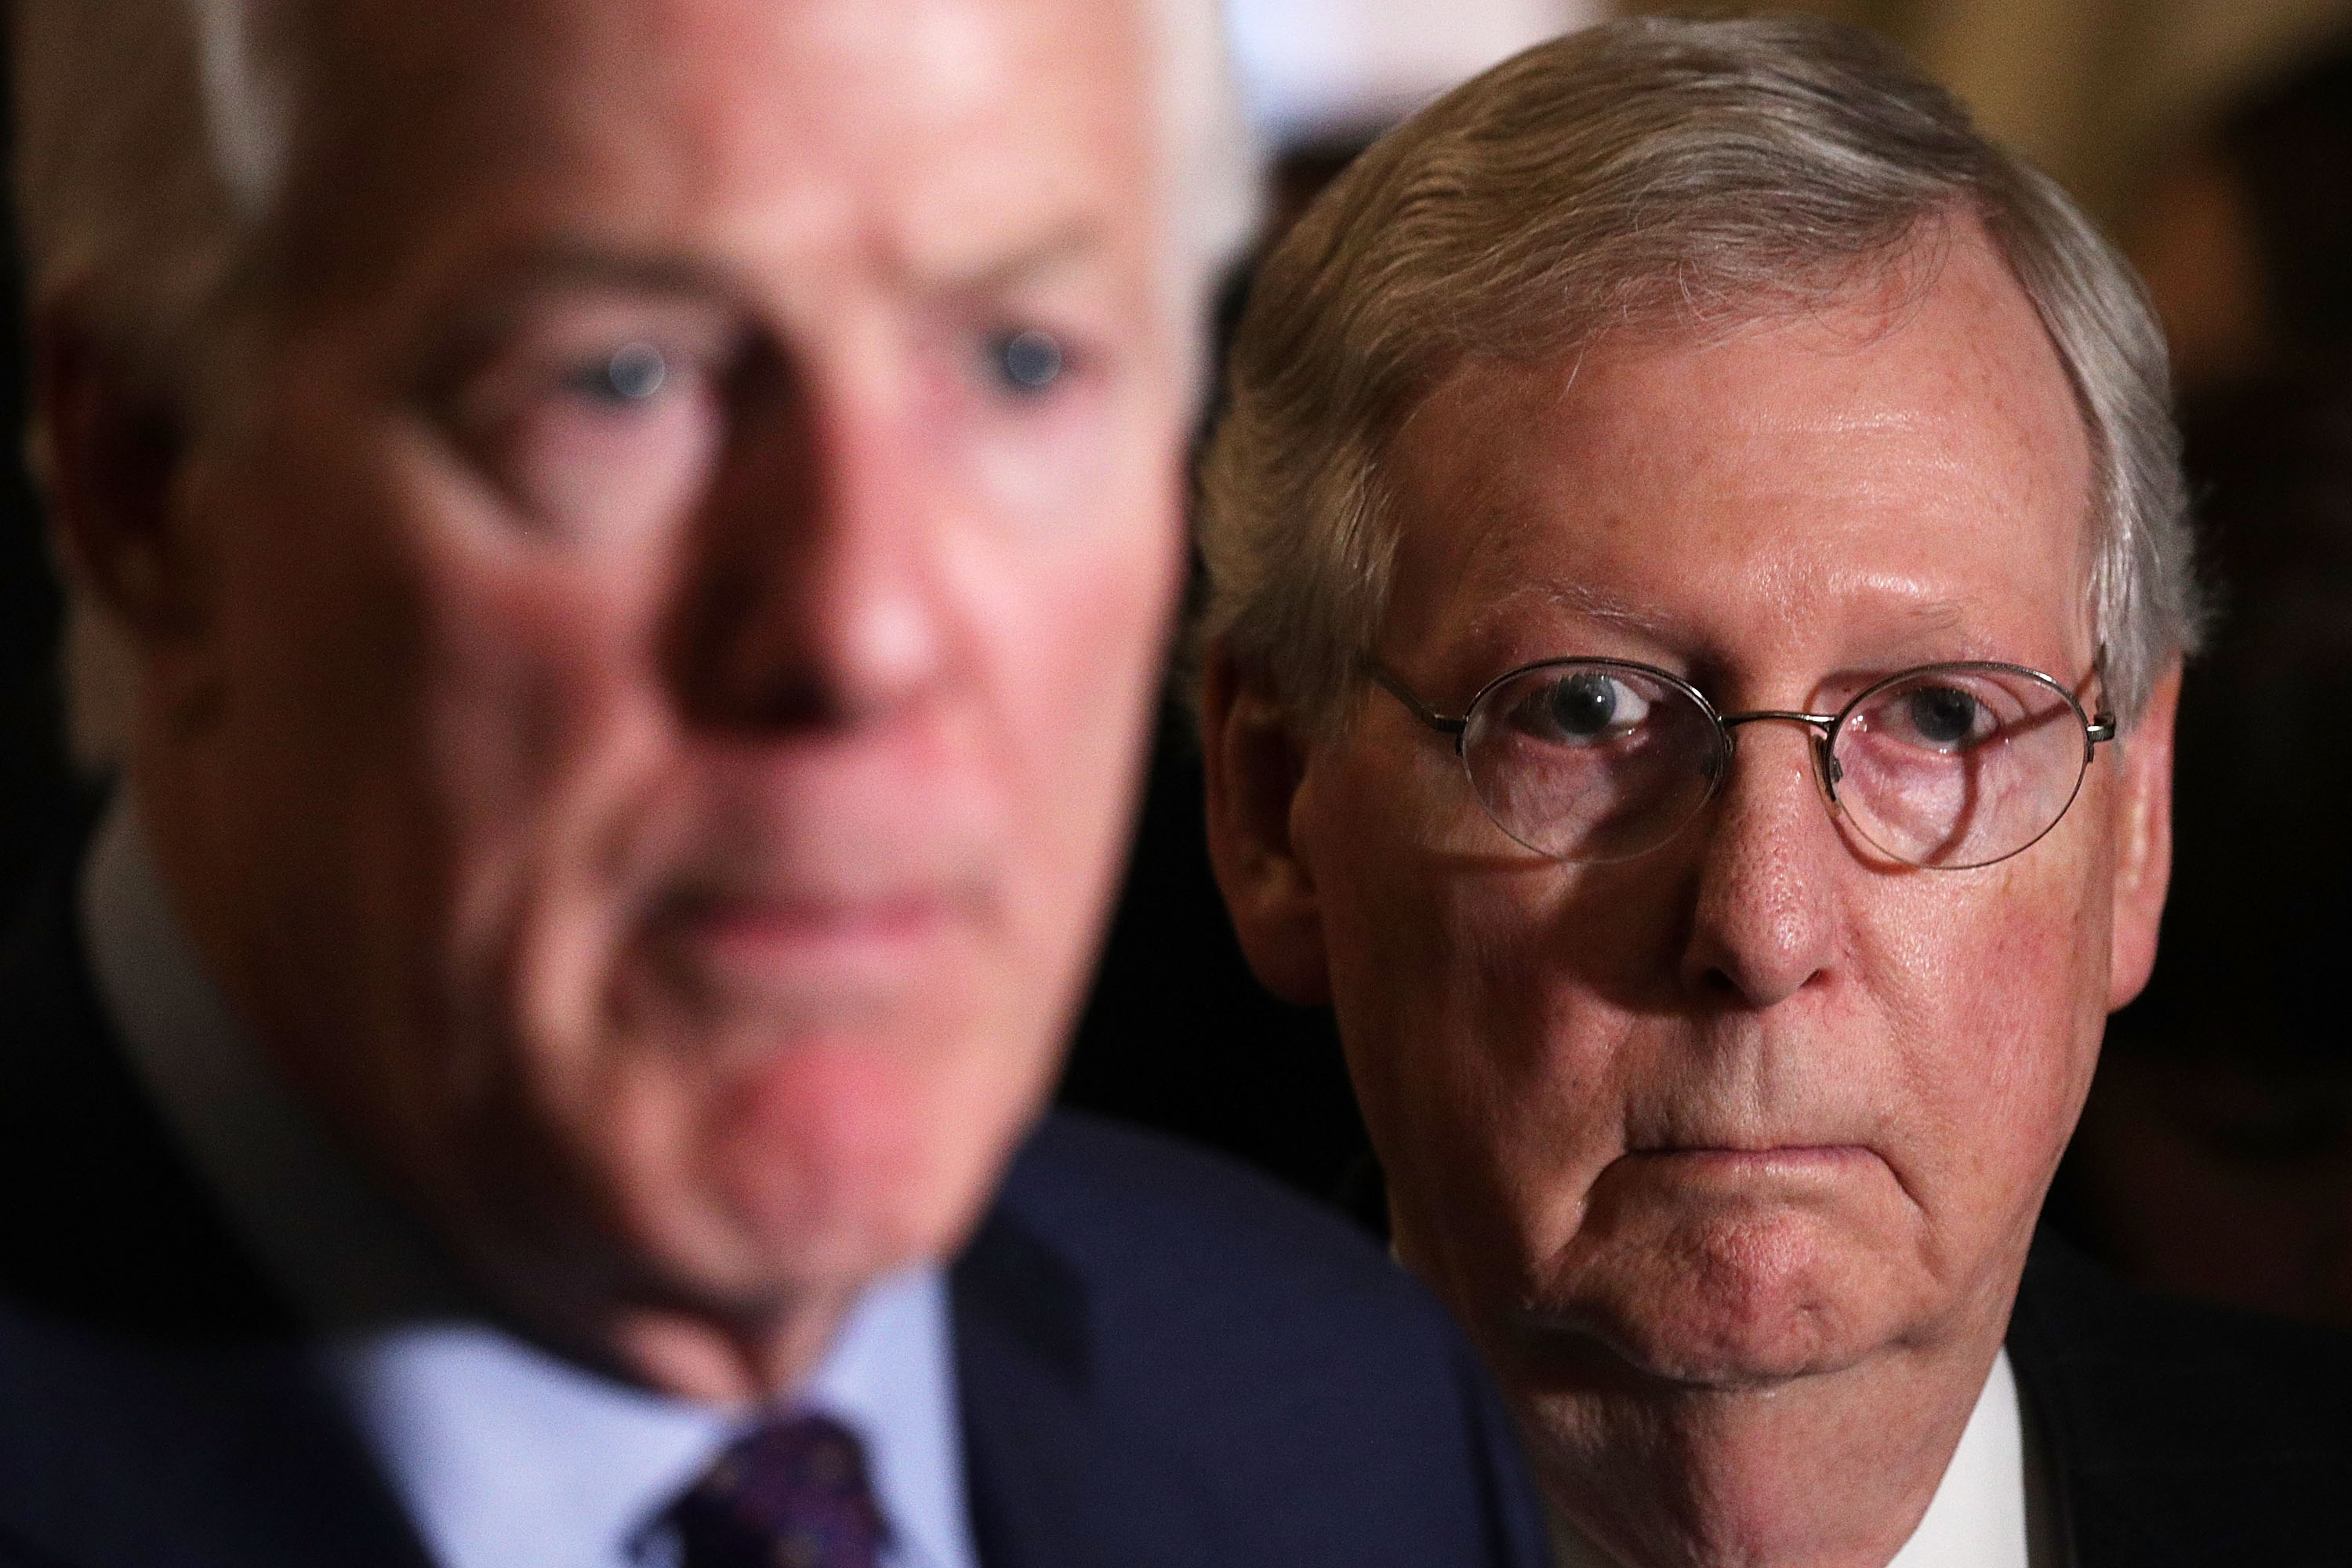 Congress is coming down to the wire on keeping the government open